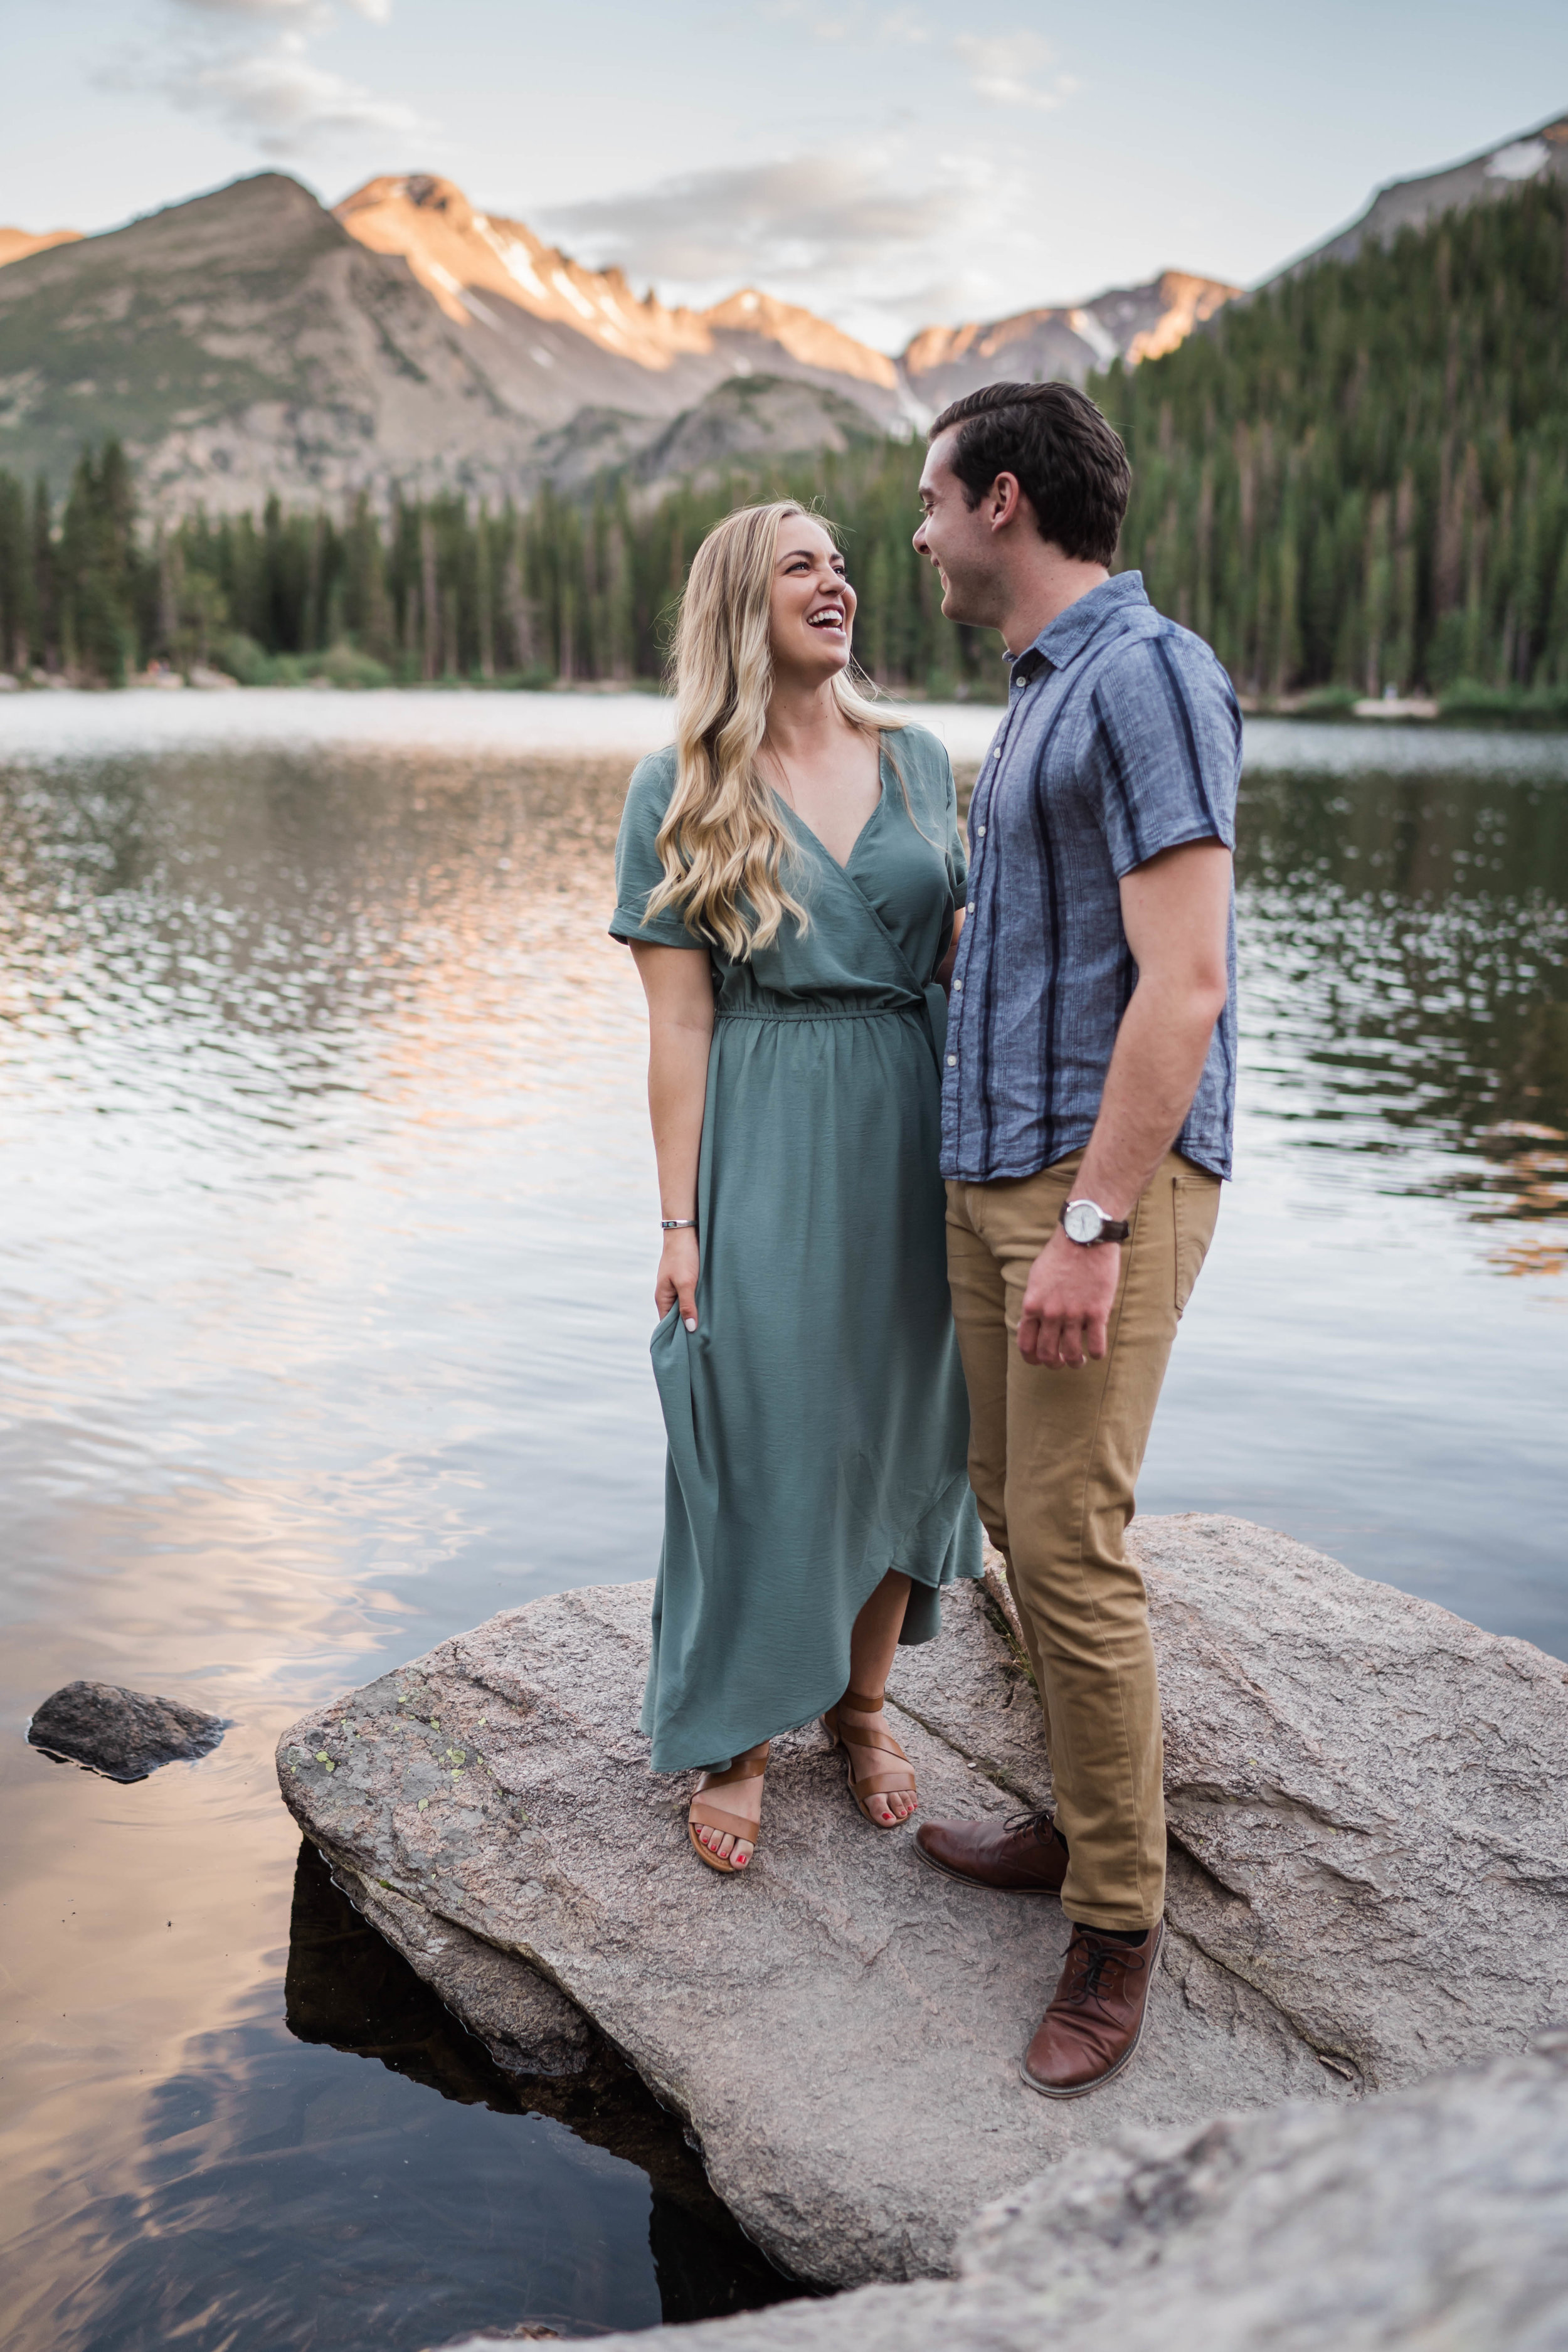 engagement photos in rocky mountain national park RMNP at bear lake -DSD06902.jpg